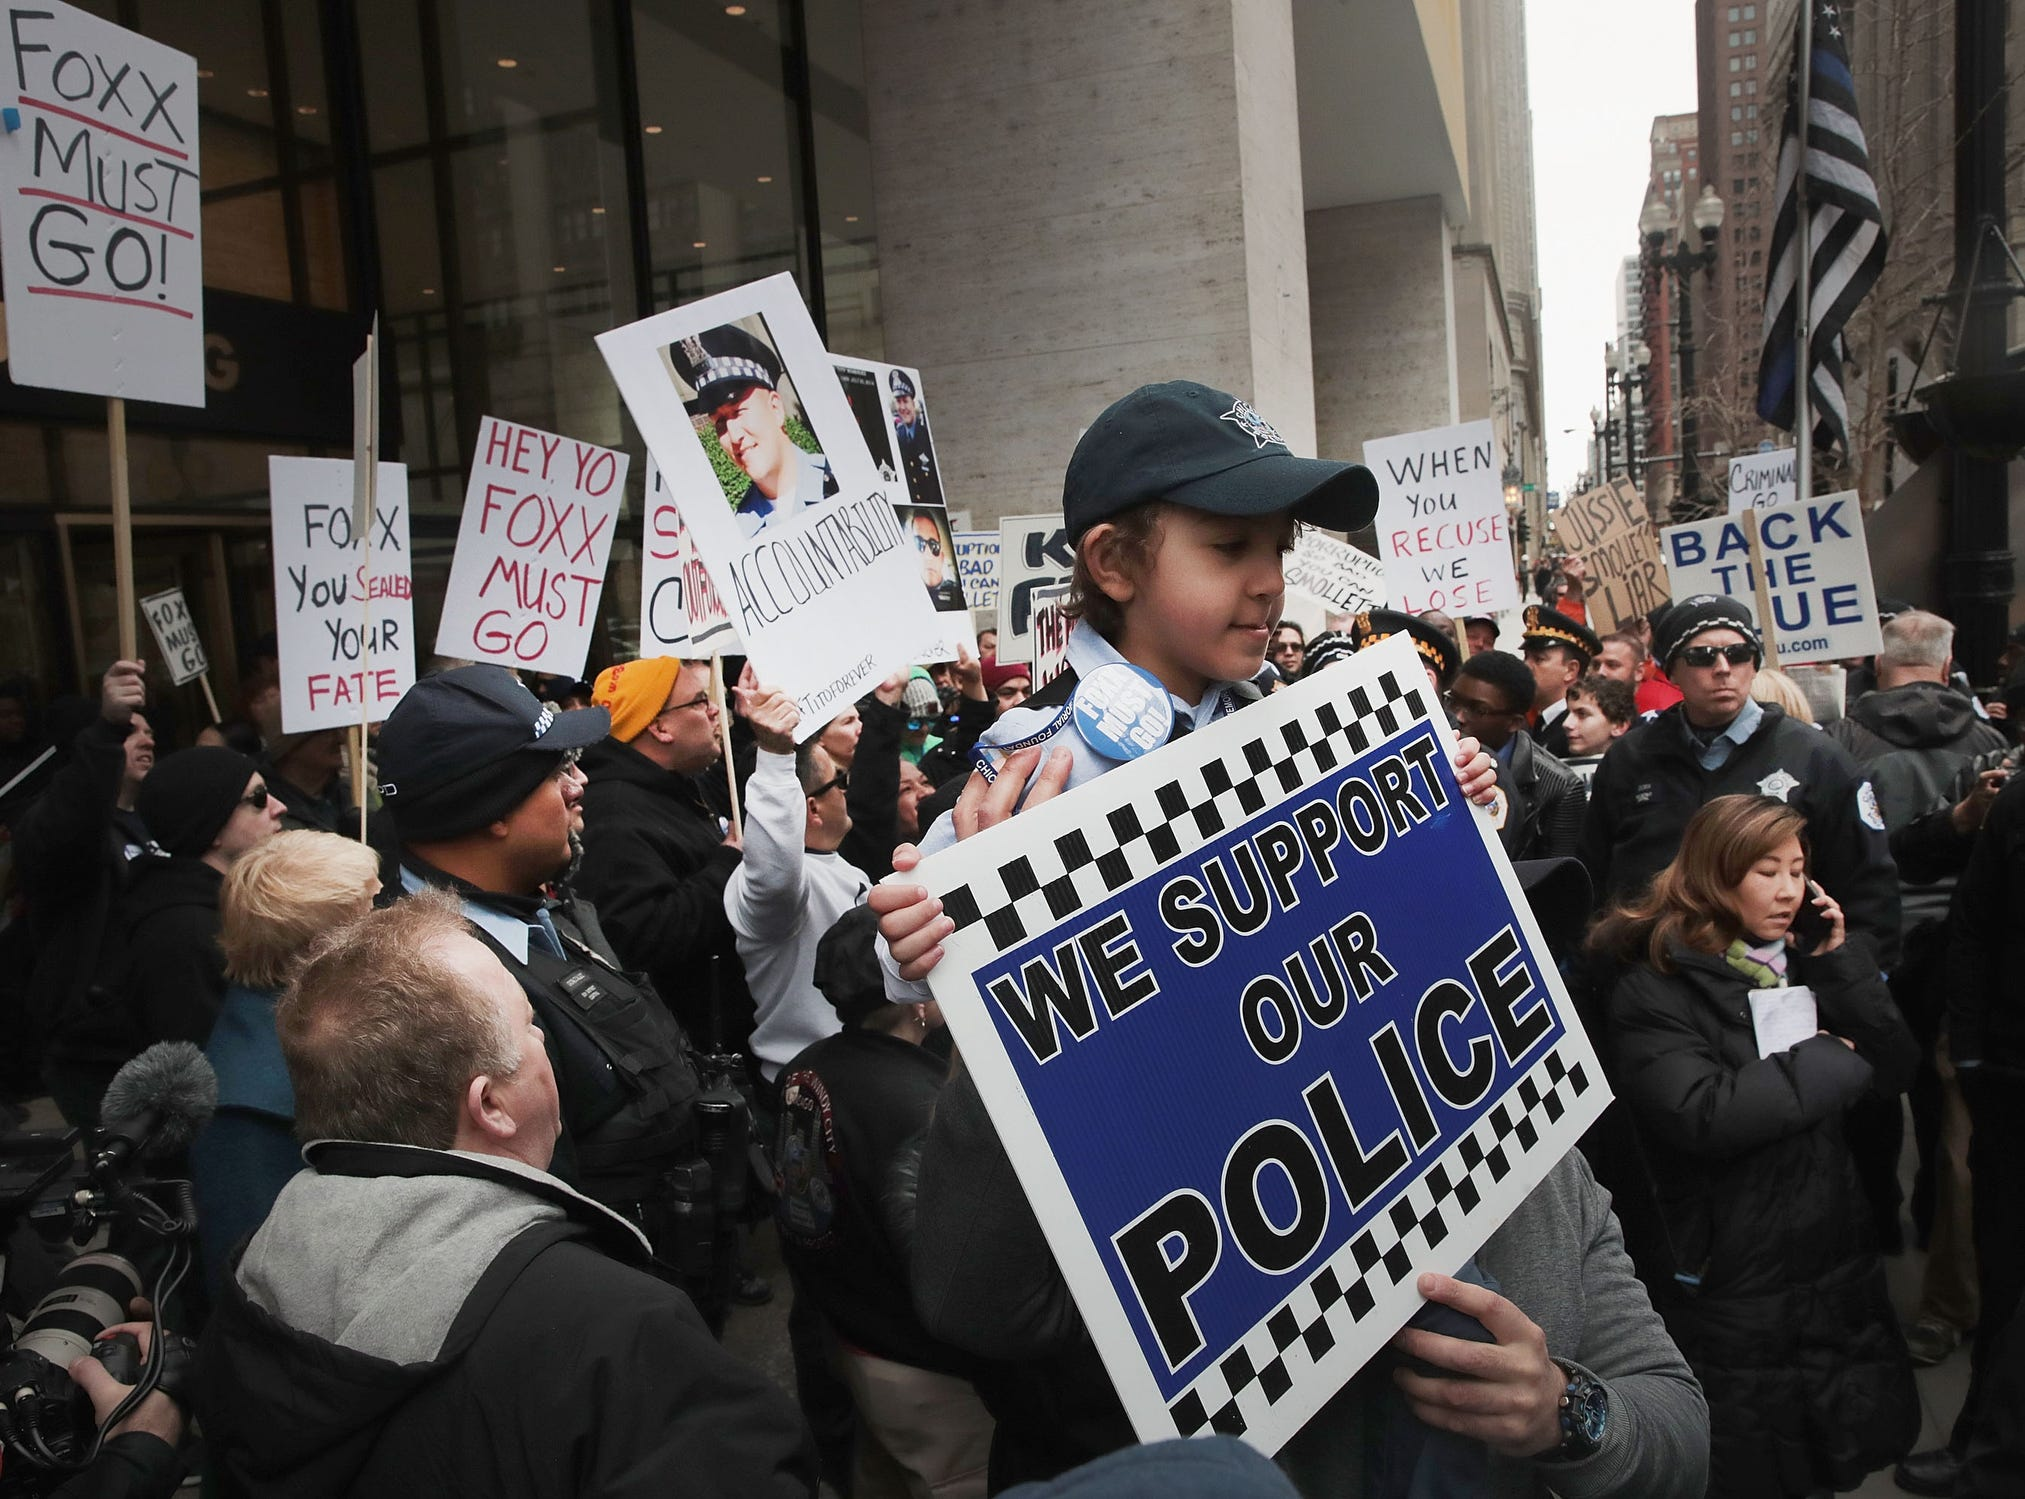 Protestors organized by the Fraternal Order of Police call for the removal of Cook County State's Attorney Kim Foxx on April 1, 2019 in Chicago.